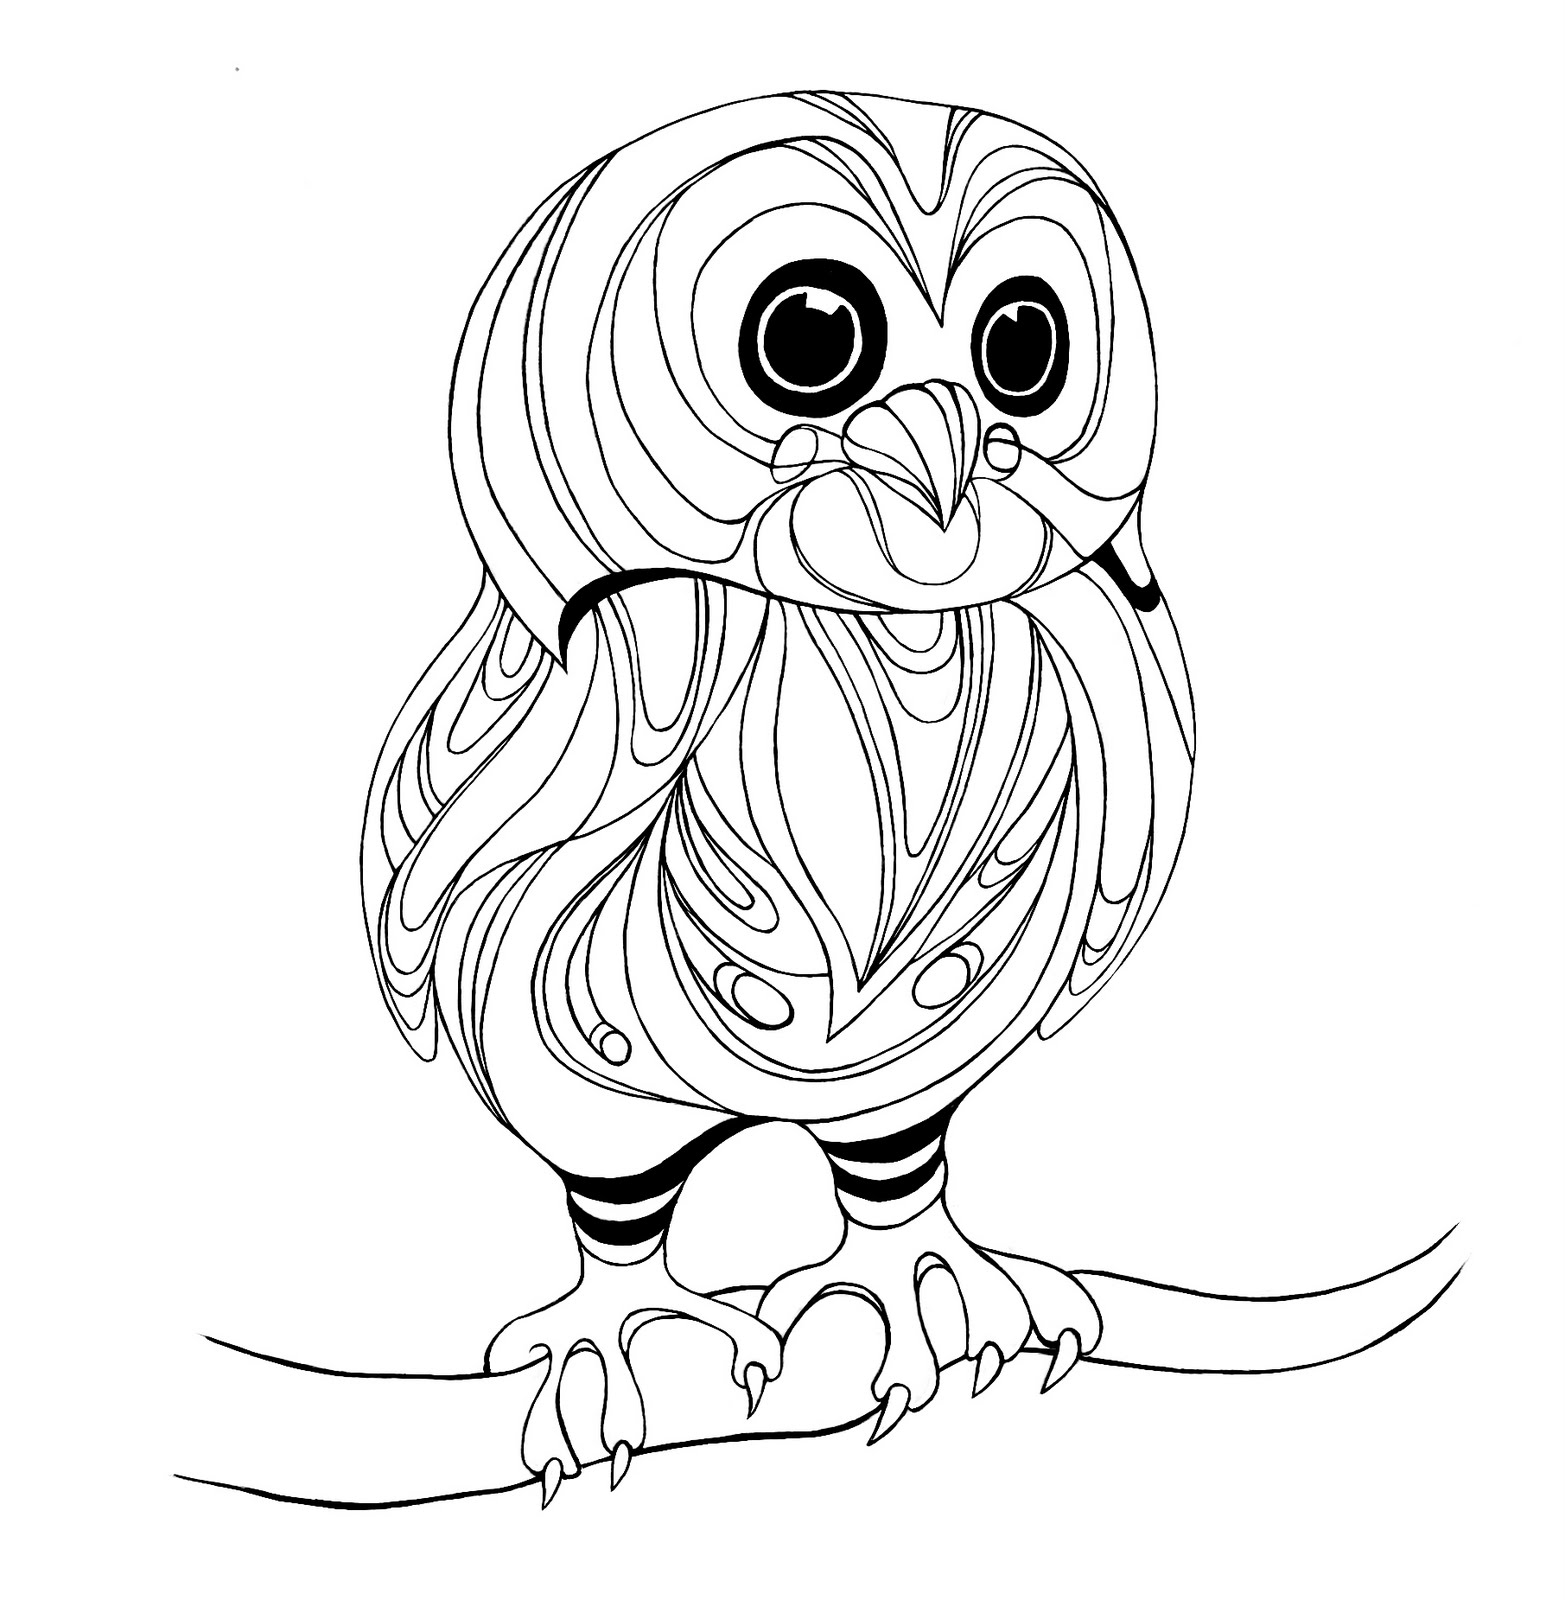 owl coloring images colleen keith art illustration blog woodland creatures owl coloring images